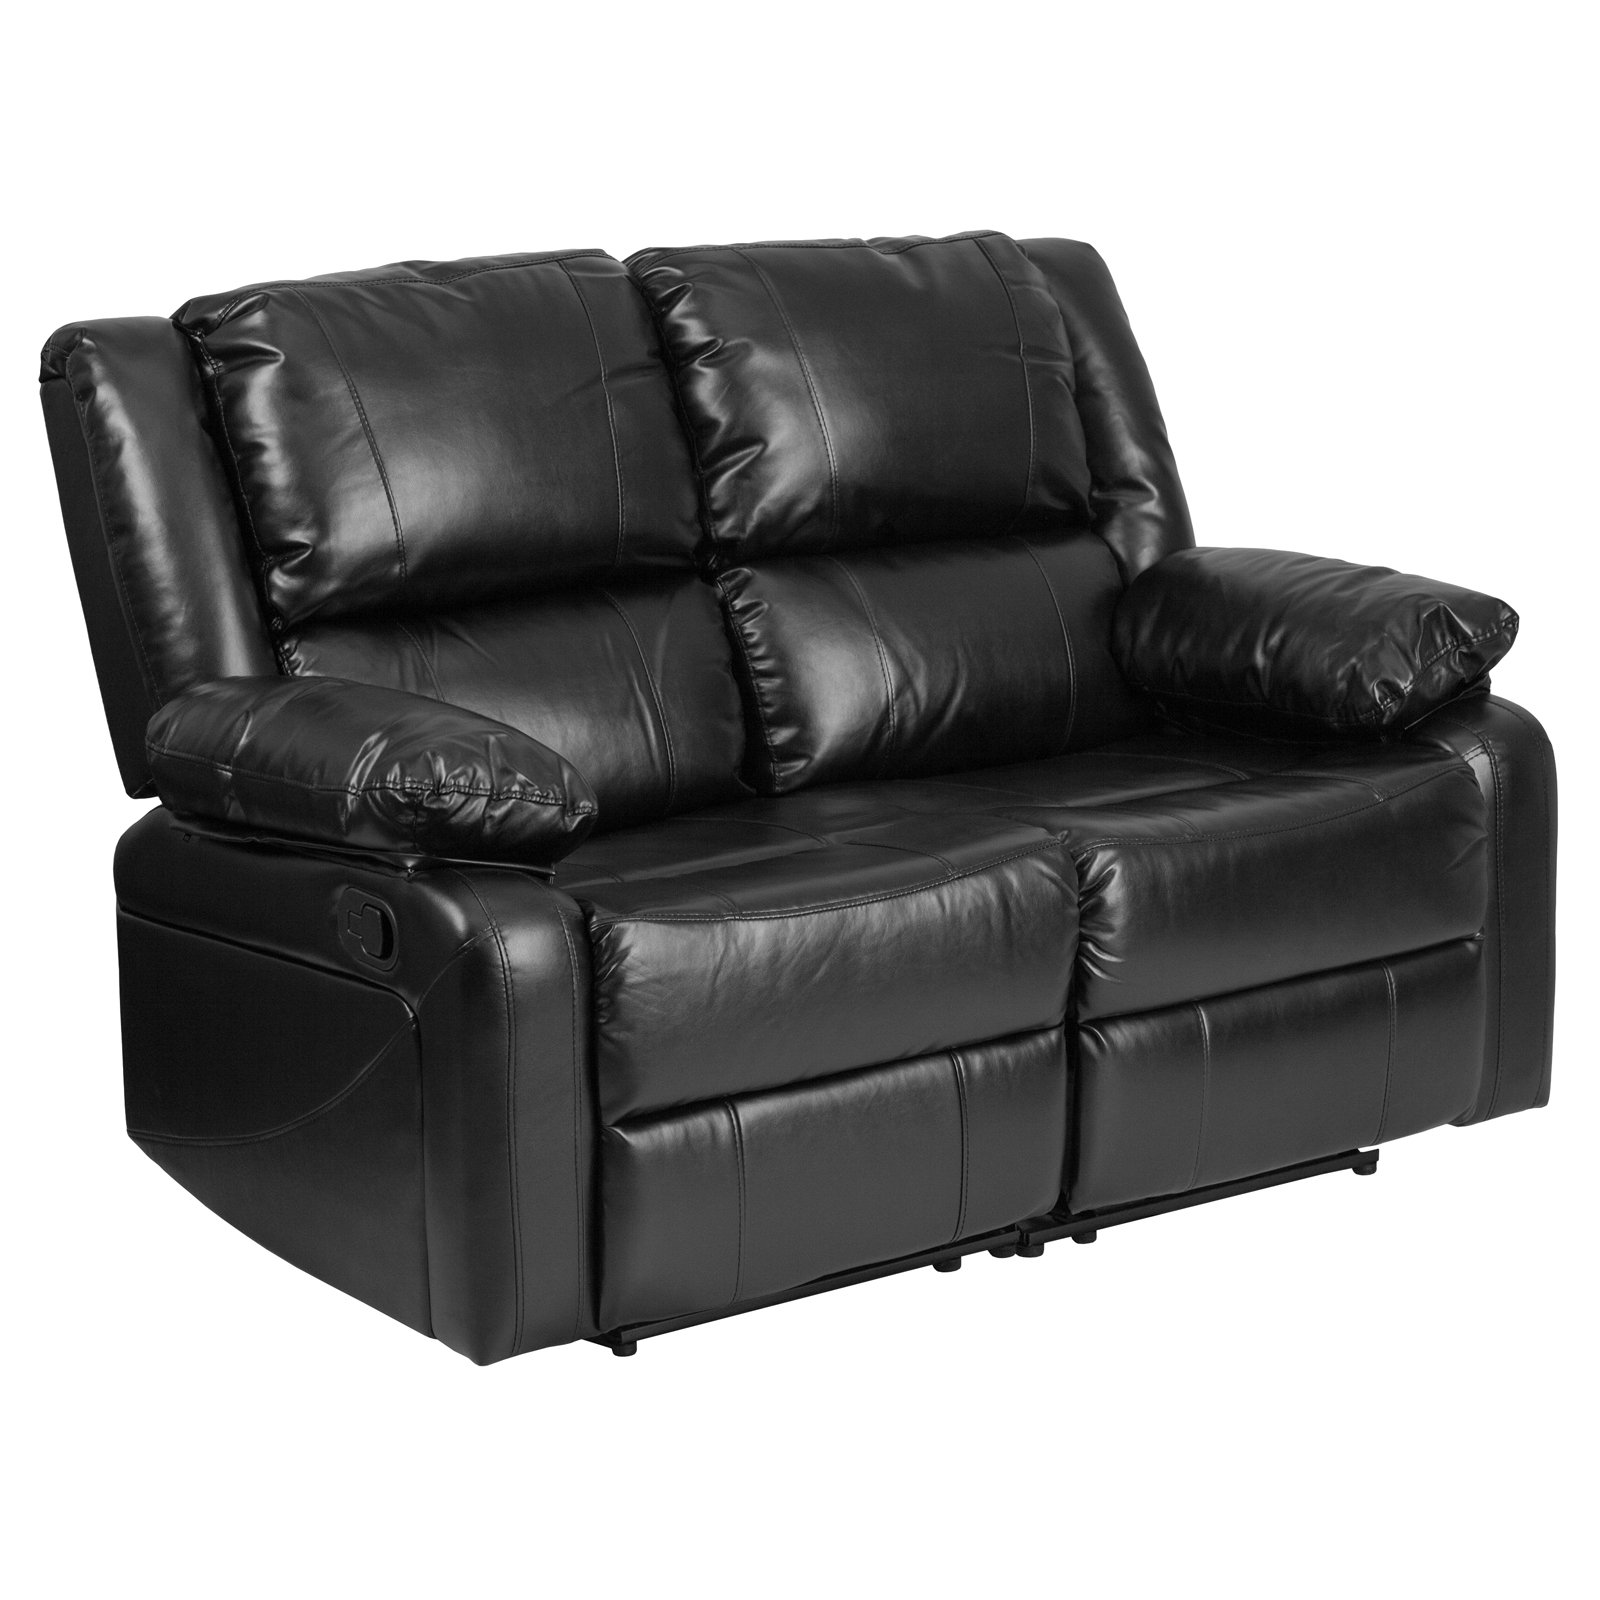 Flash Furniture Harmony Series Black Leather Loveseat with Two Built-In Recliners by Flash Furniture